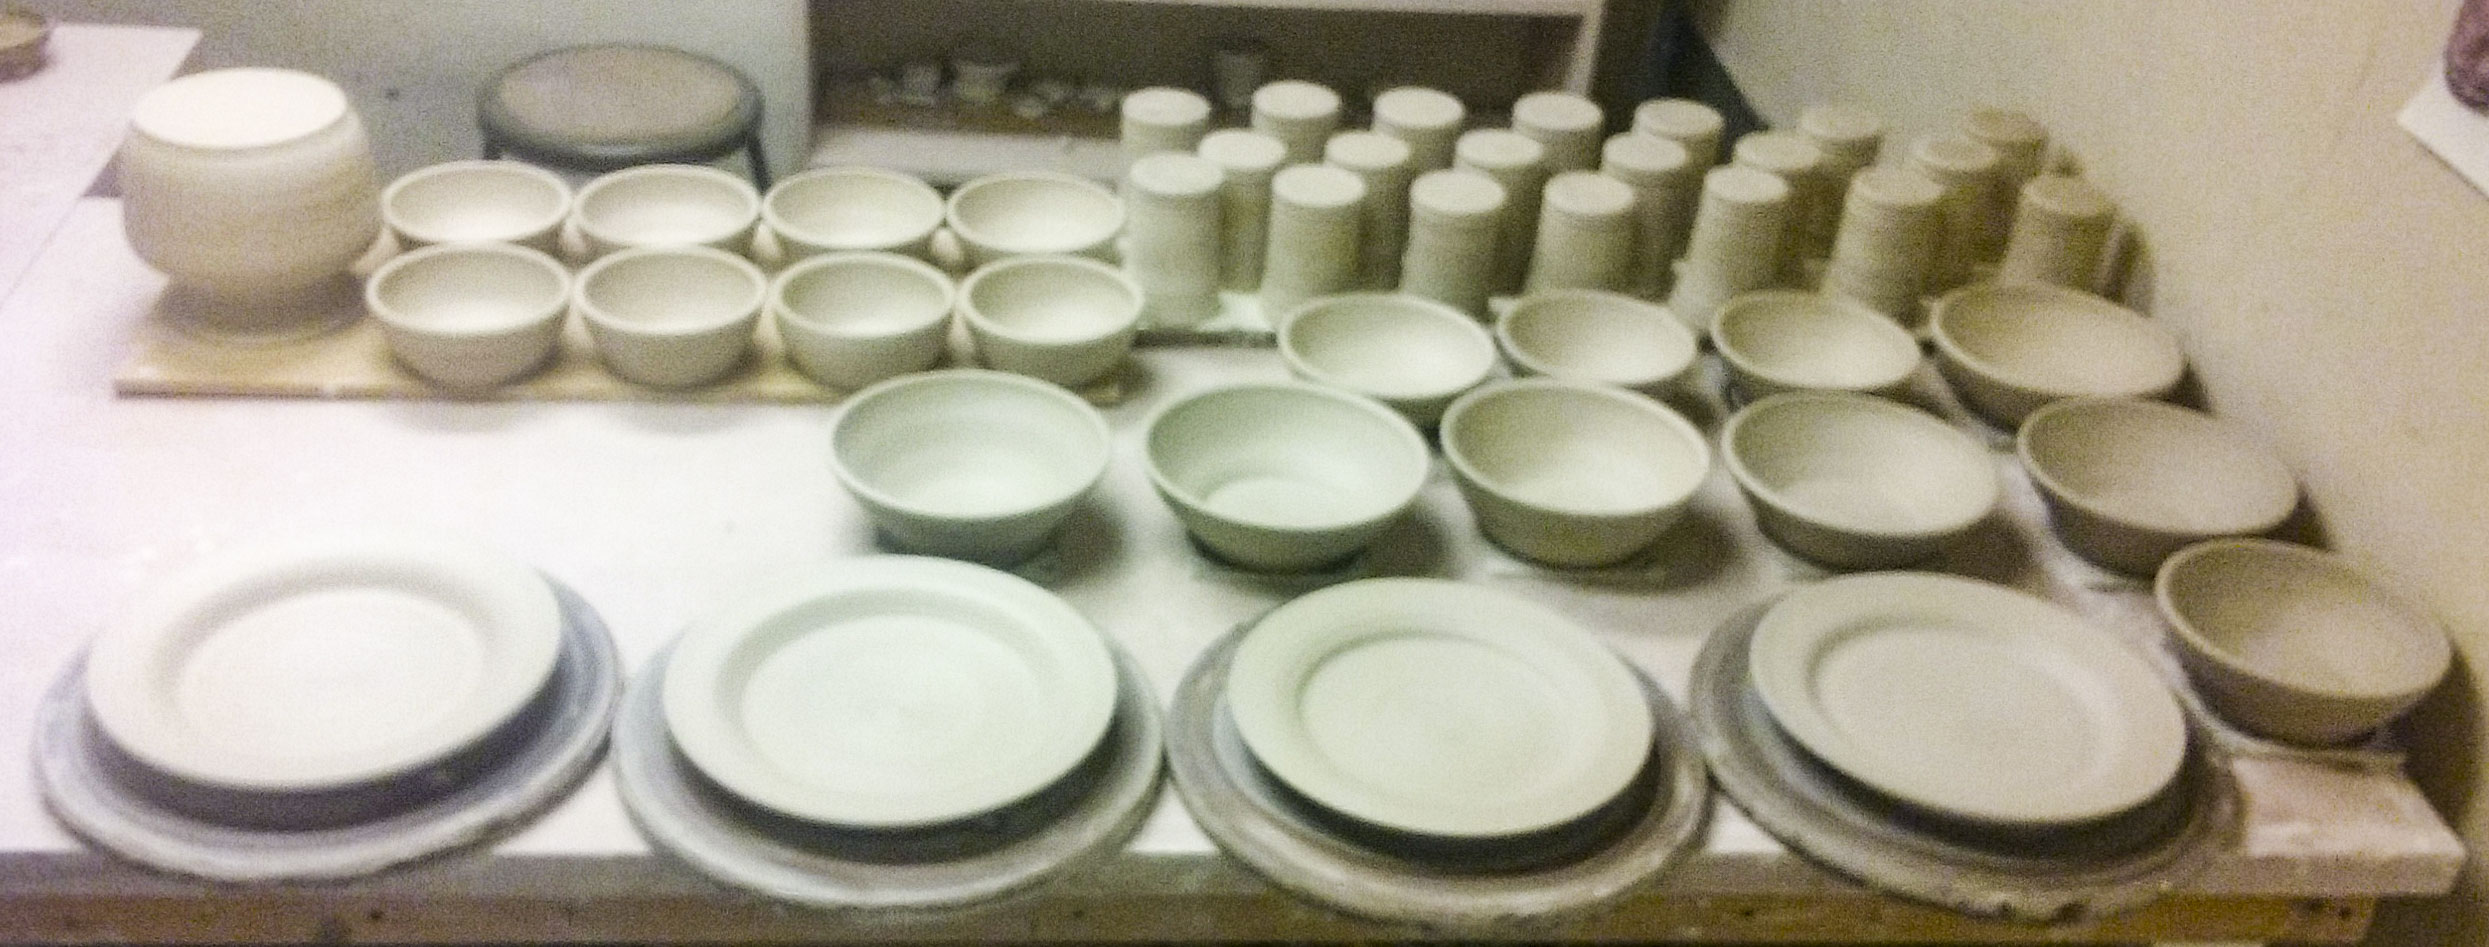 Greenware Dinnerware